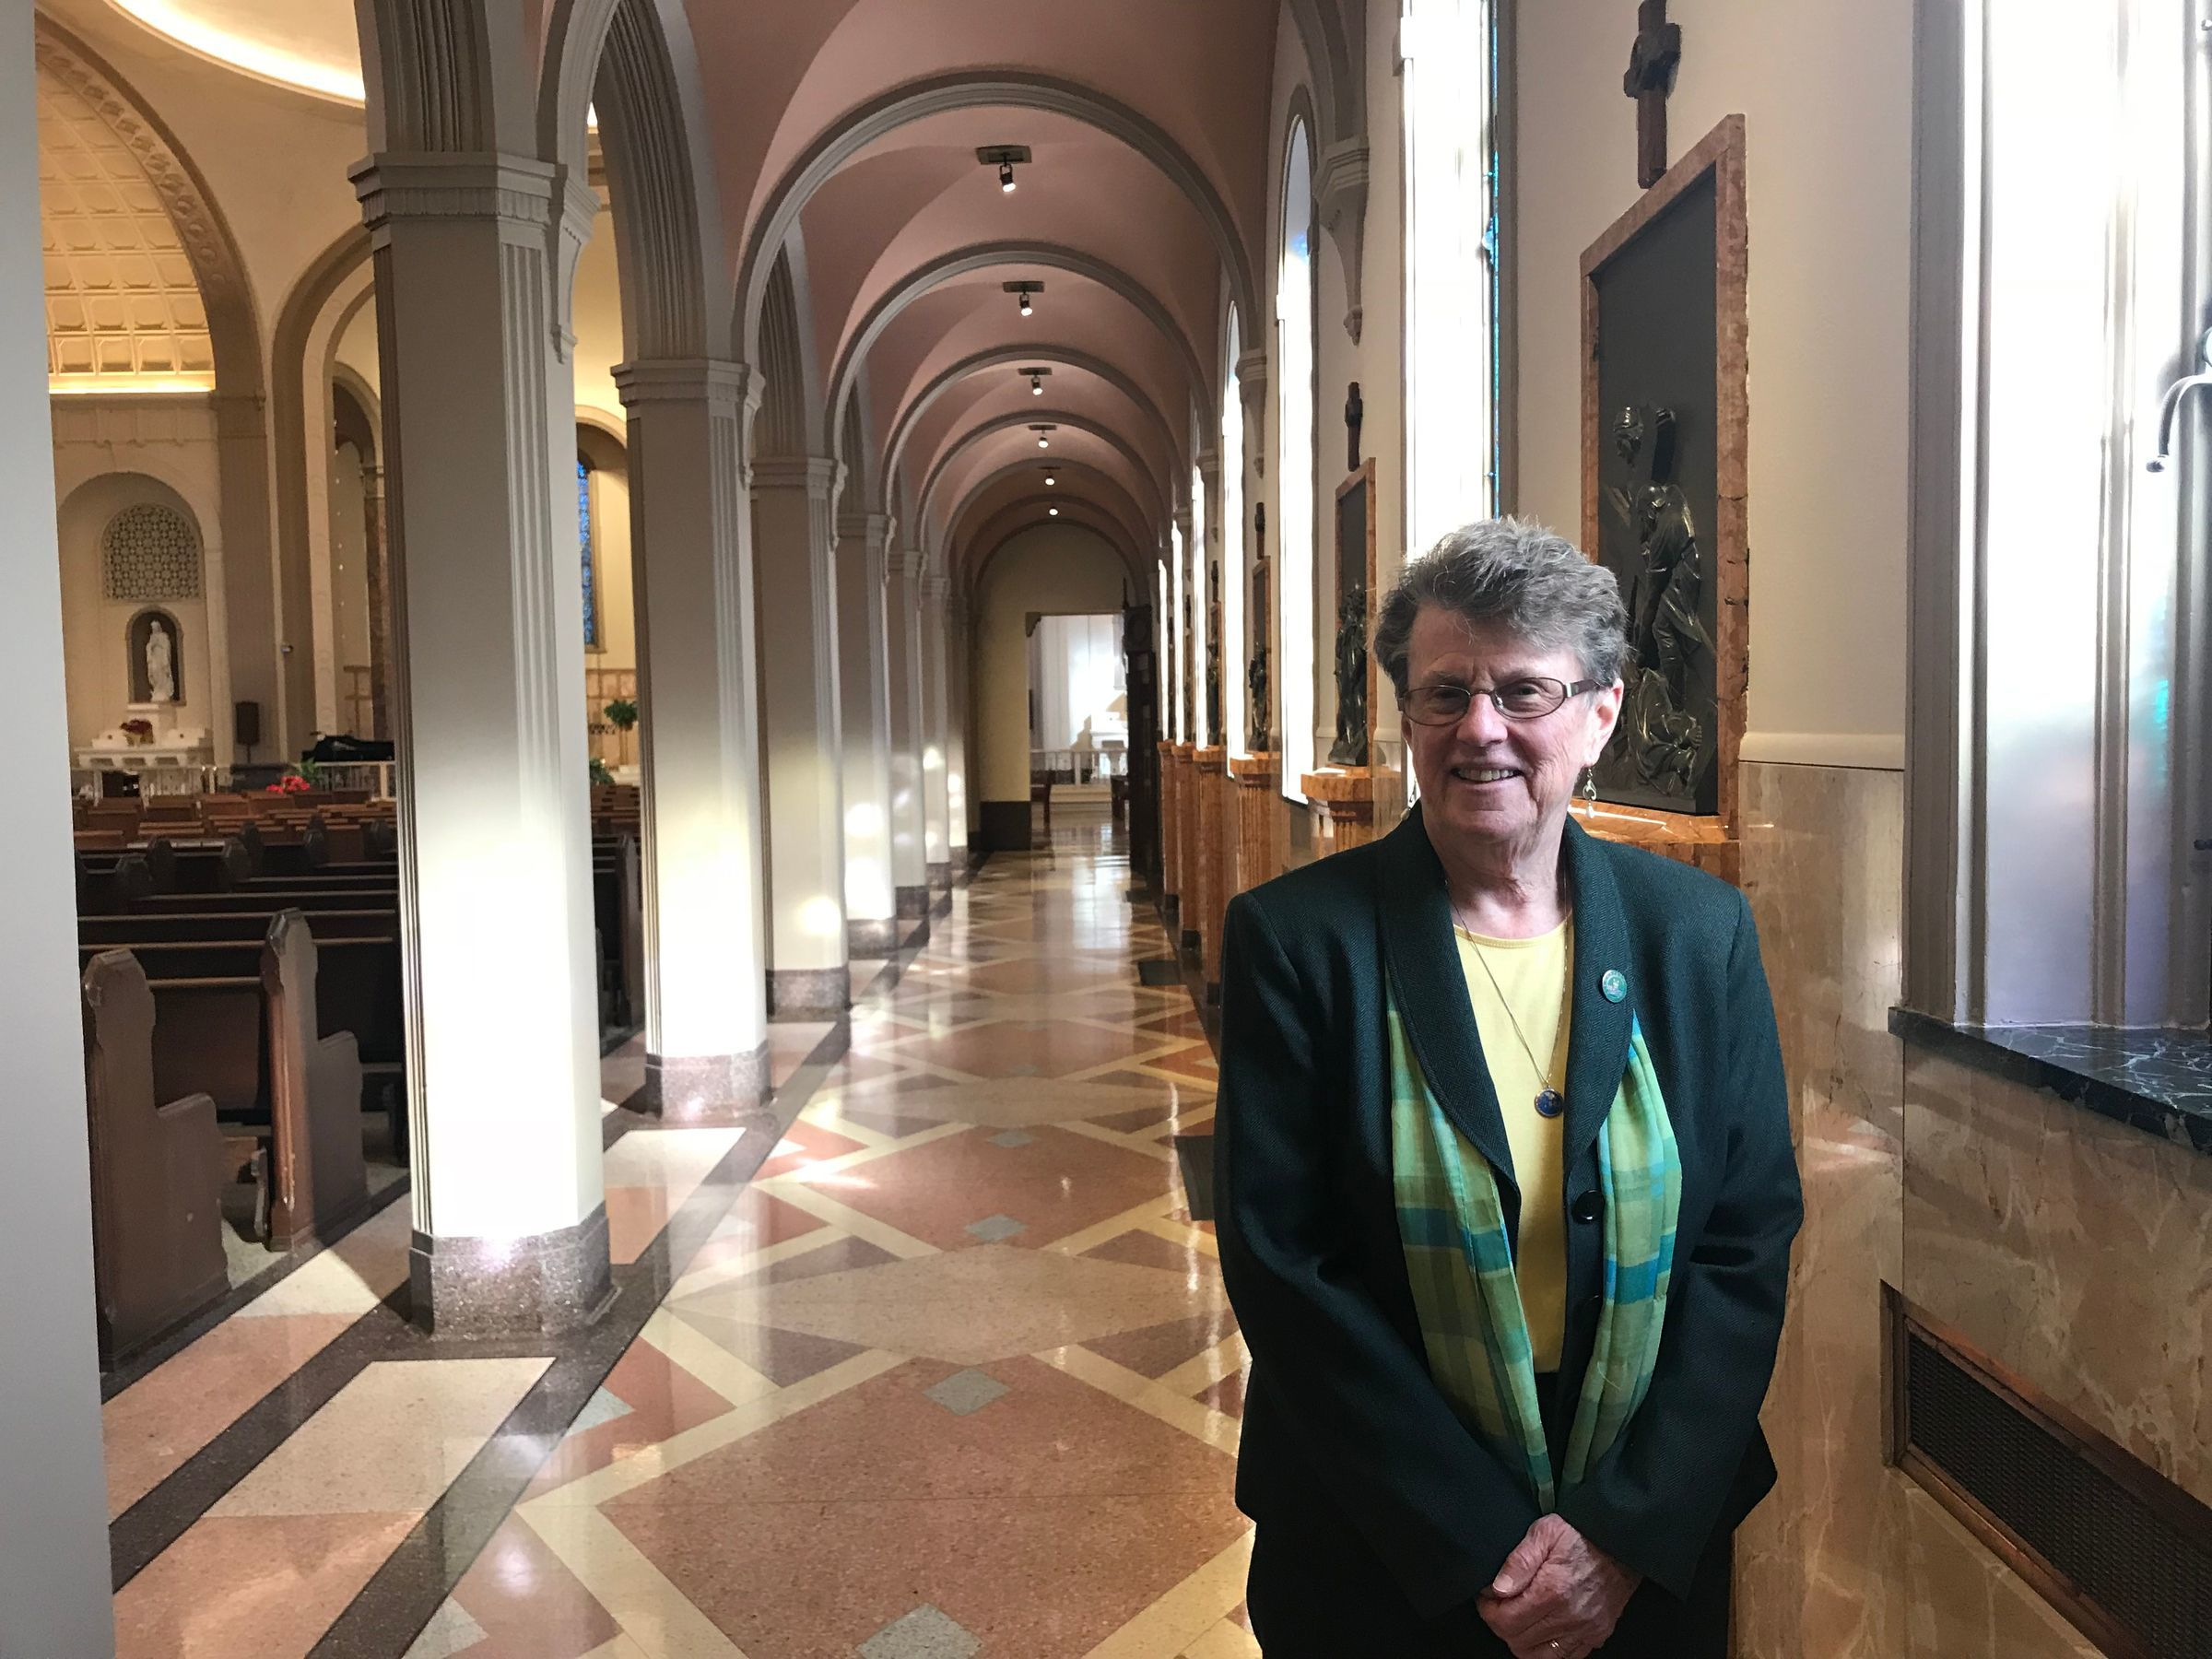 Sister Jane Herb, president of the religious order Immaculate Heart of Mary, which founded the now-closed Marygrove College. Herb is on the Marygrove Conservancy Board.